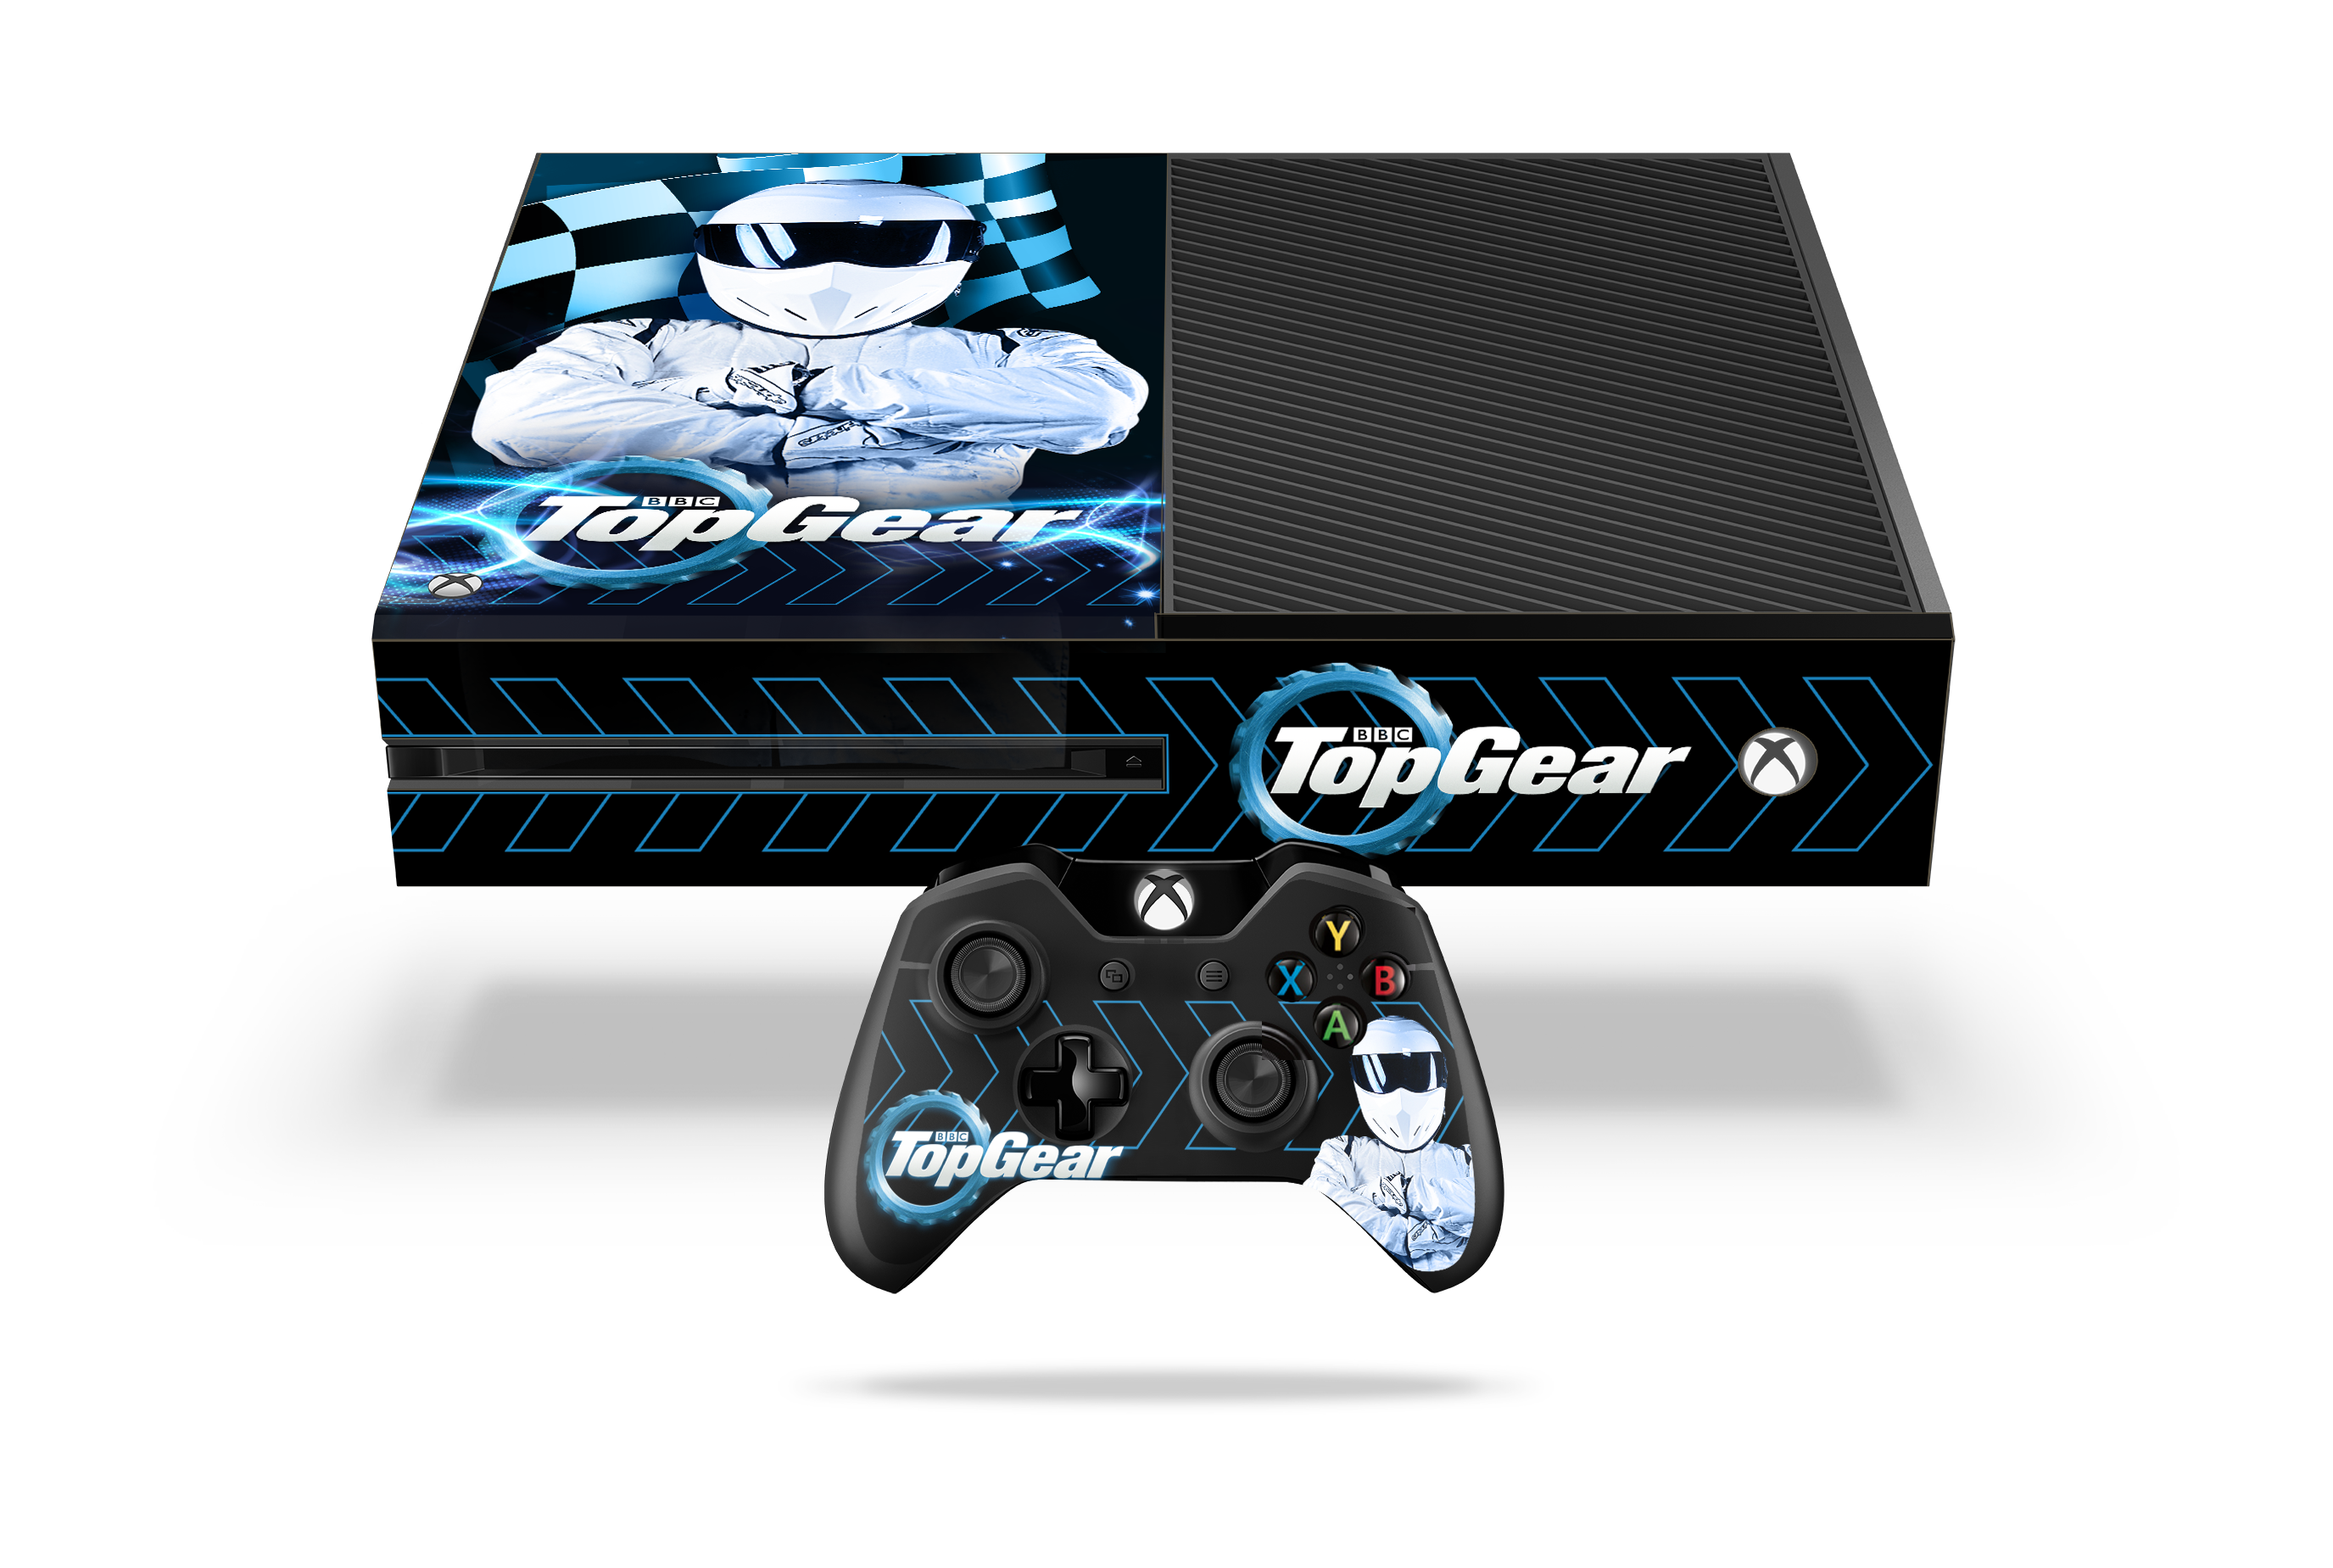 Win an exclusive Top Gear Xbox One